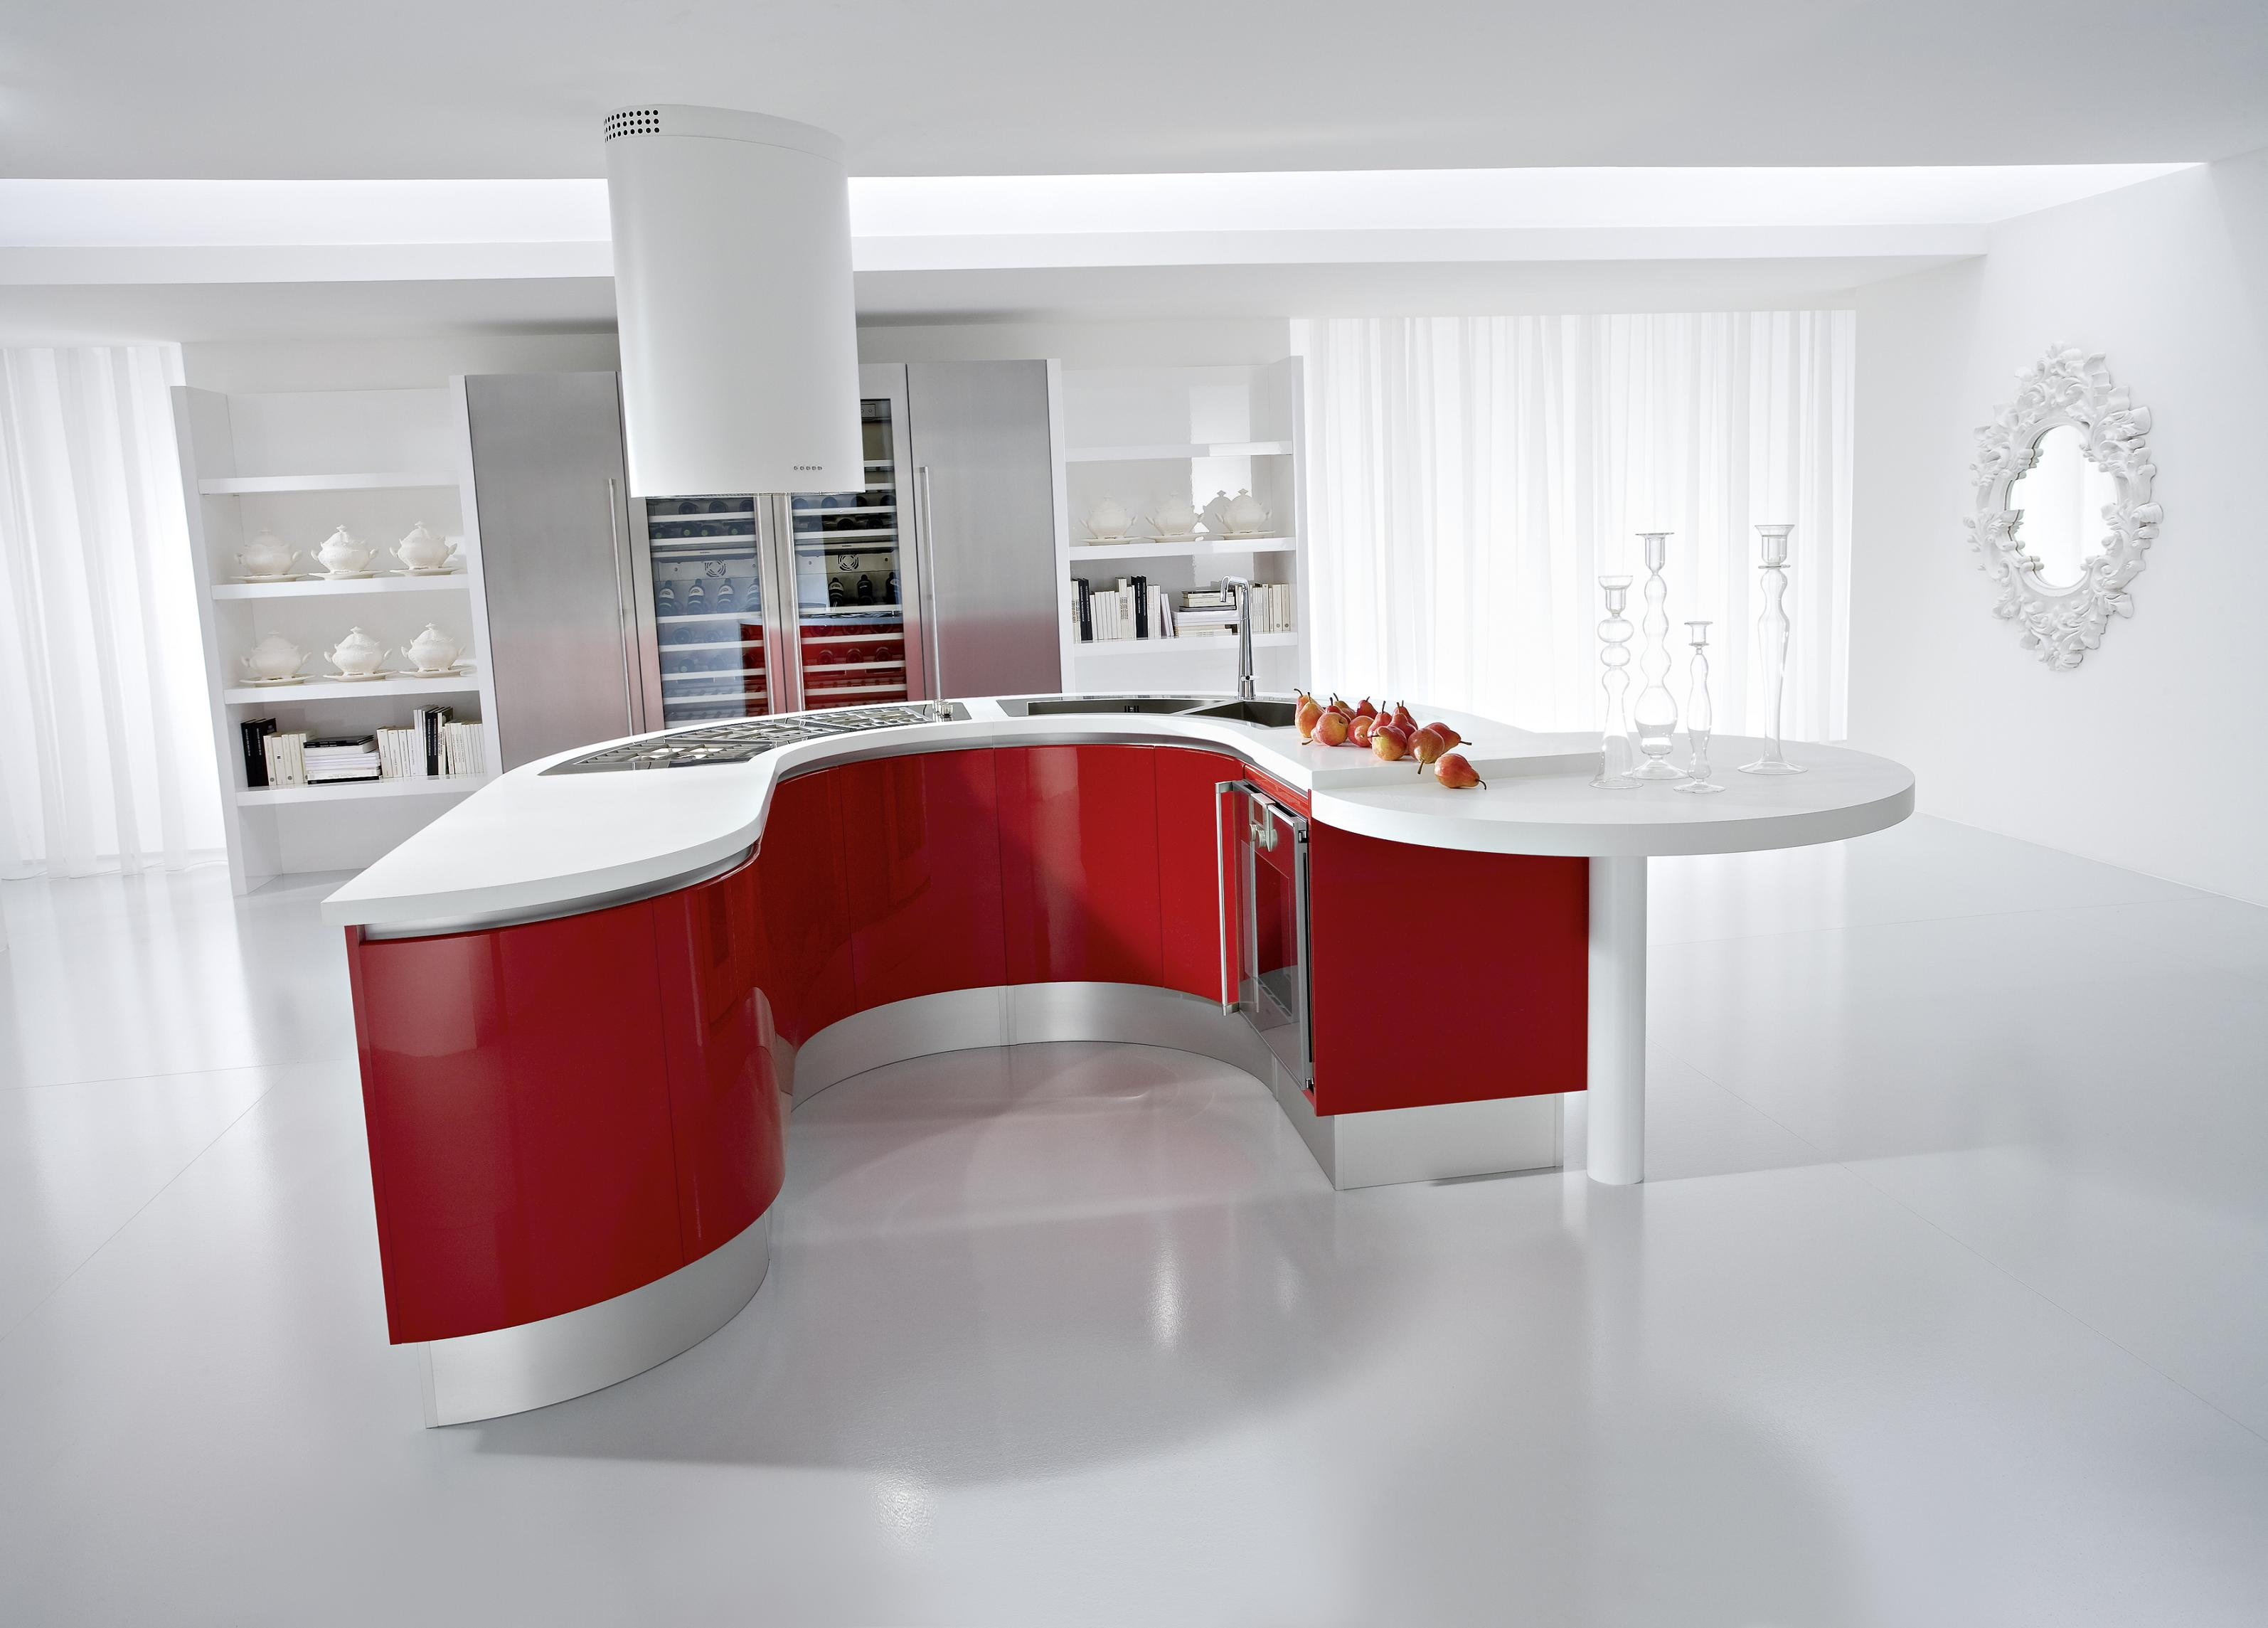 Outstanding Modern Kitchen CabiDesign Ideas 3189 x 2289 · 381 kB · jpeg